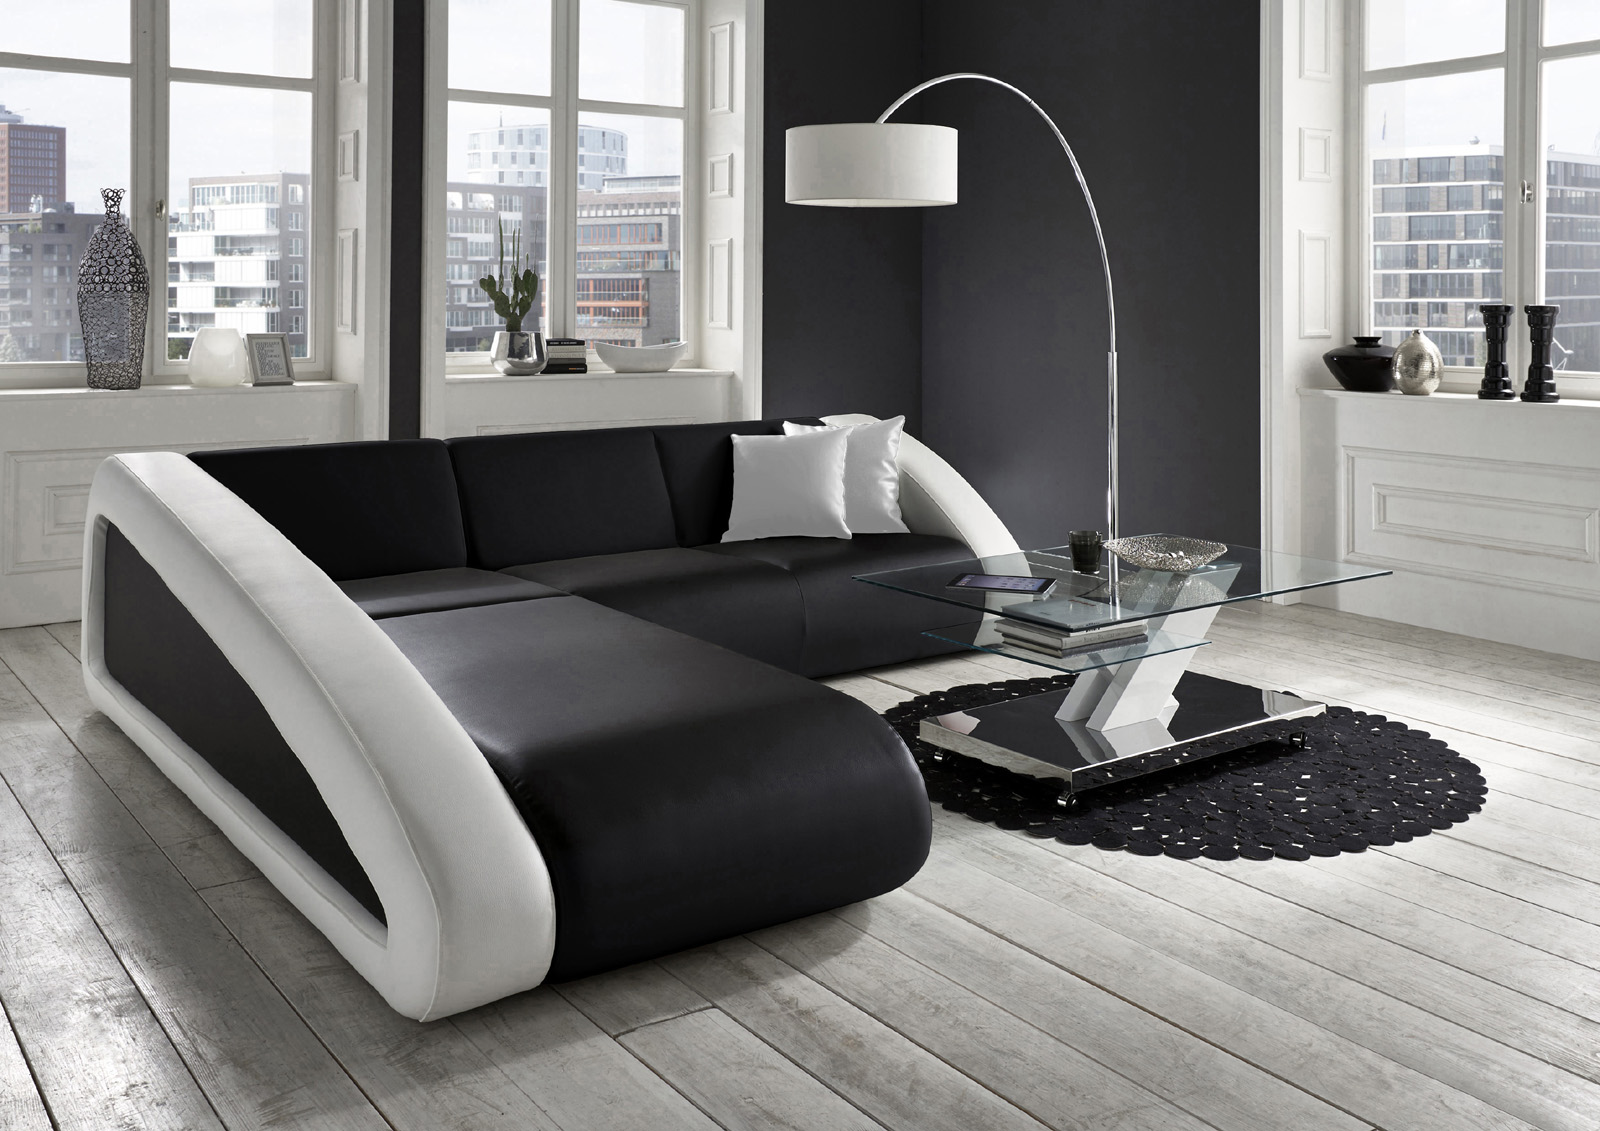 sam couch ecksofa polsterecke 250 x 270 cm schwarz wei. Black Bedroom Furniture Sets. Home Design Ideas